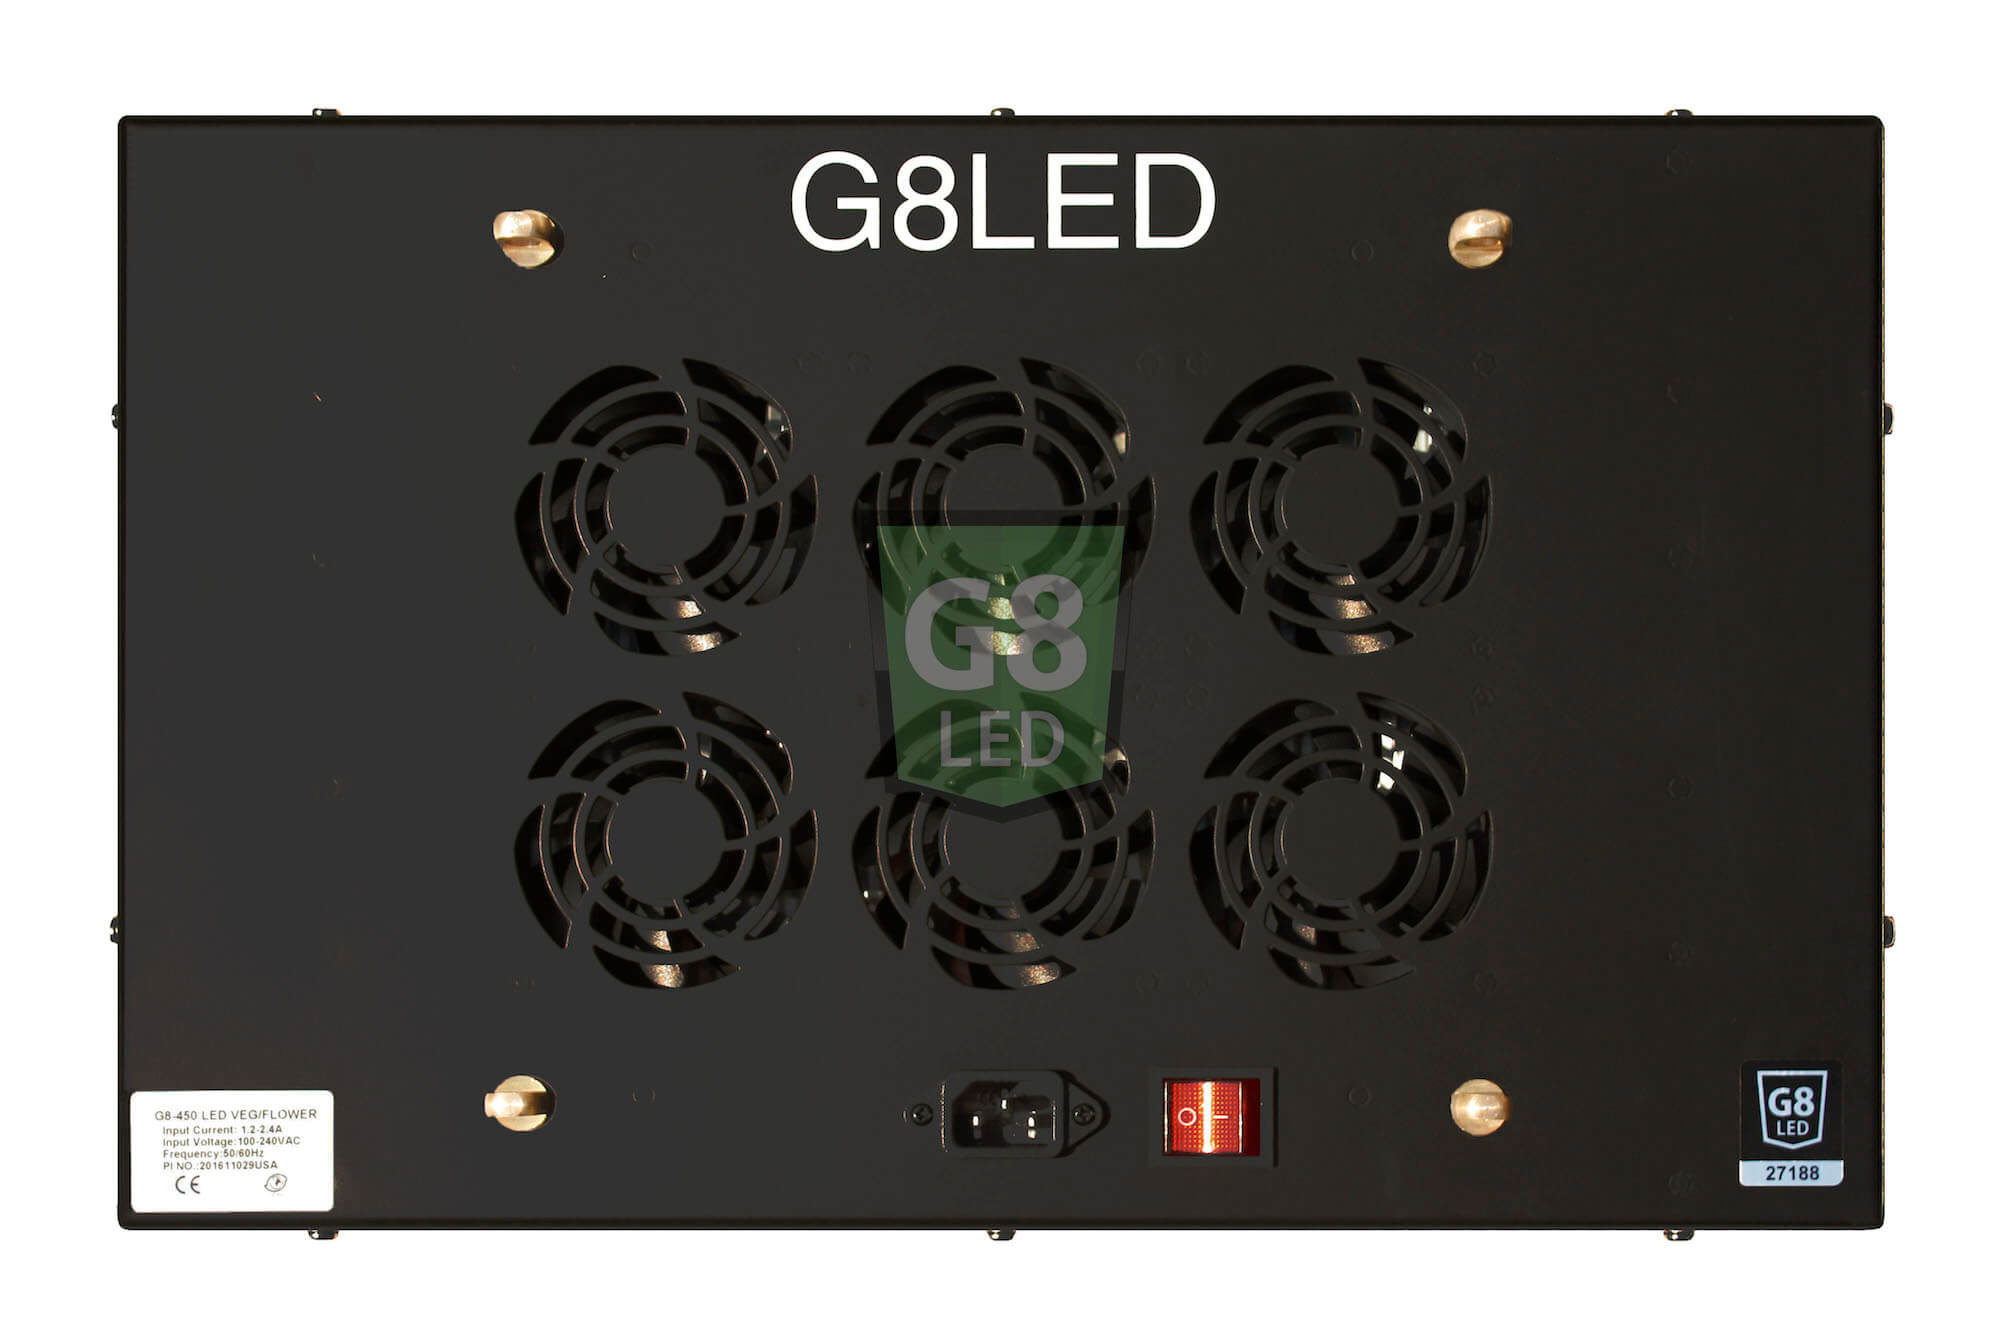 G8LED 450 Watt LED Veg/Flower Grow Light